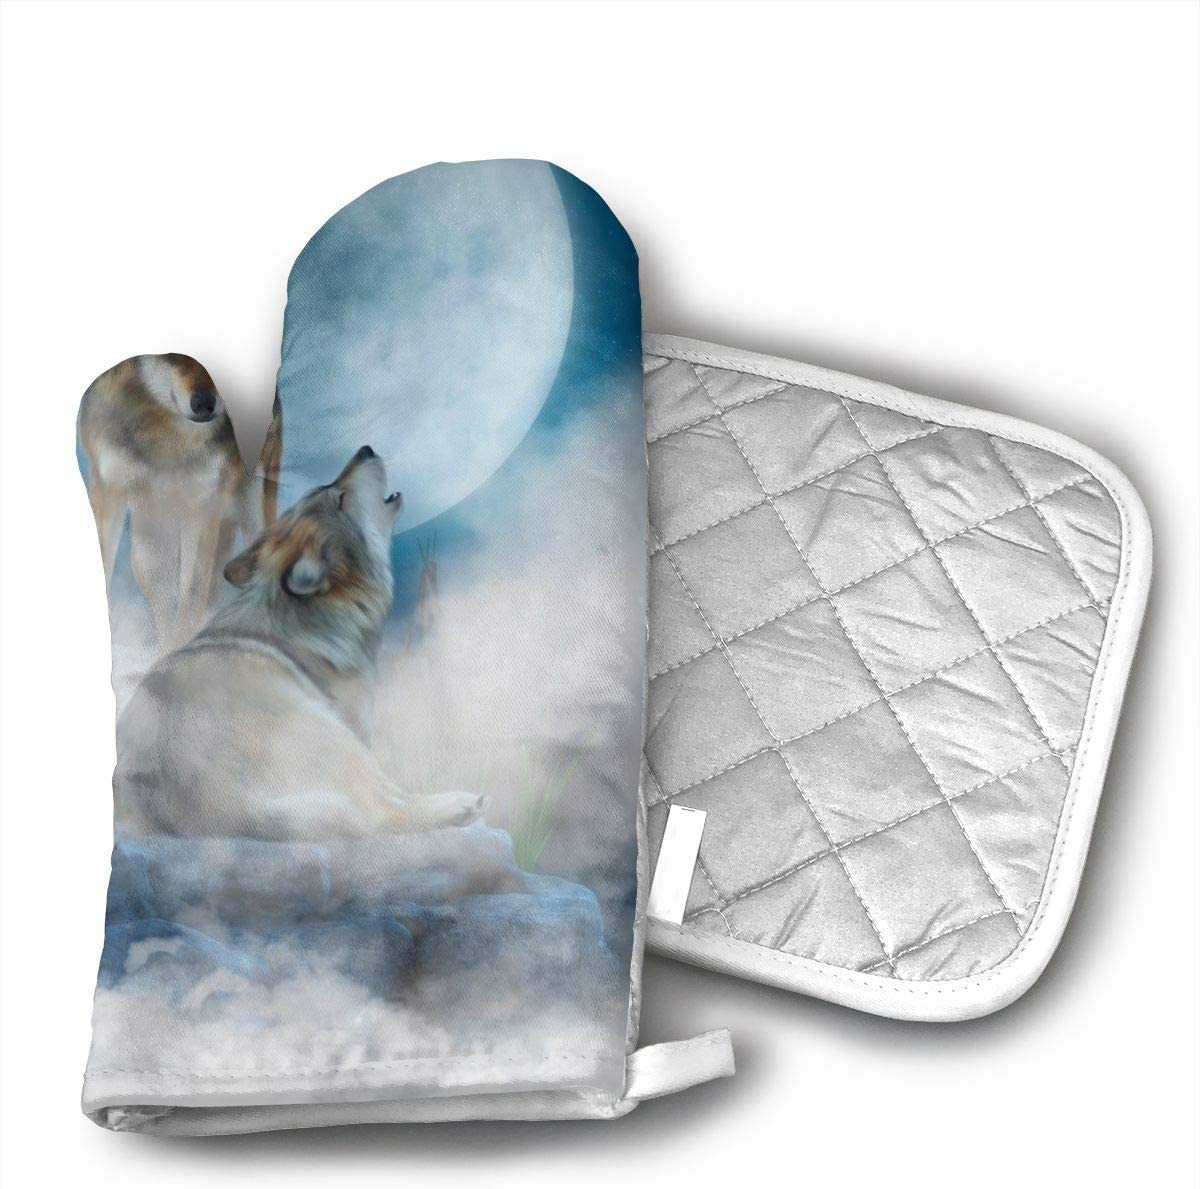 FGXQB Wolves in The Mist Kitchen Oven Mitts Oven Gloves for BBQ Cooking Set Baking Grilling Barbecue Microwave Machine